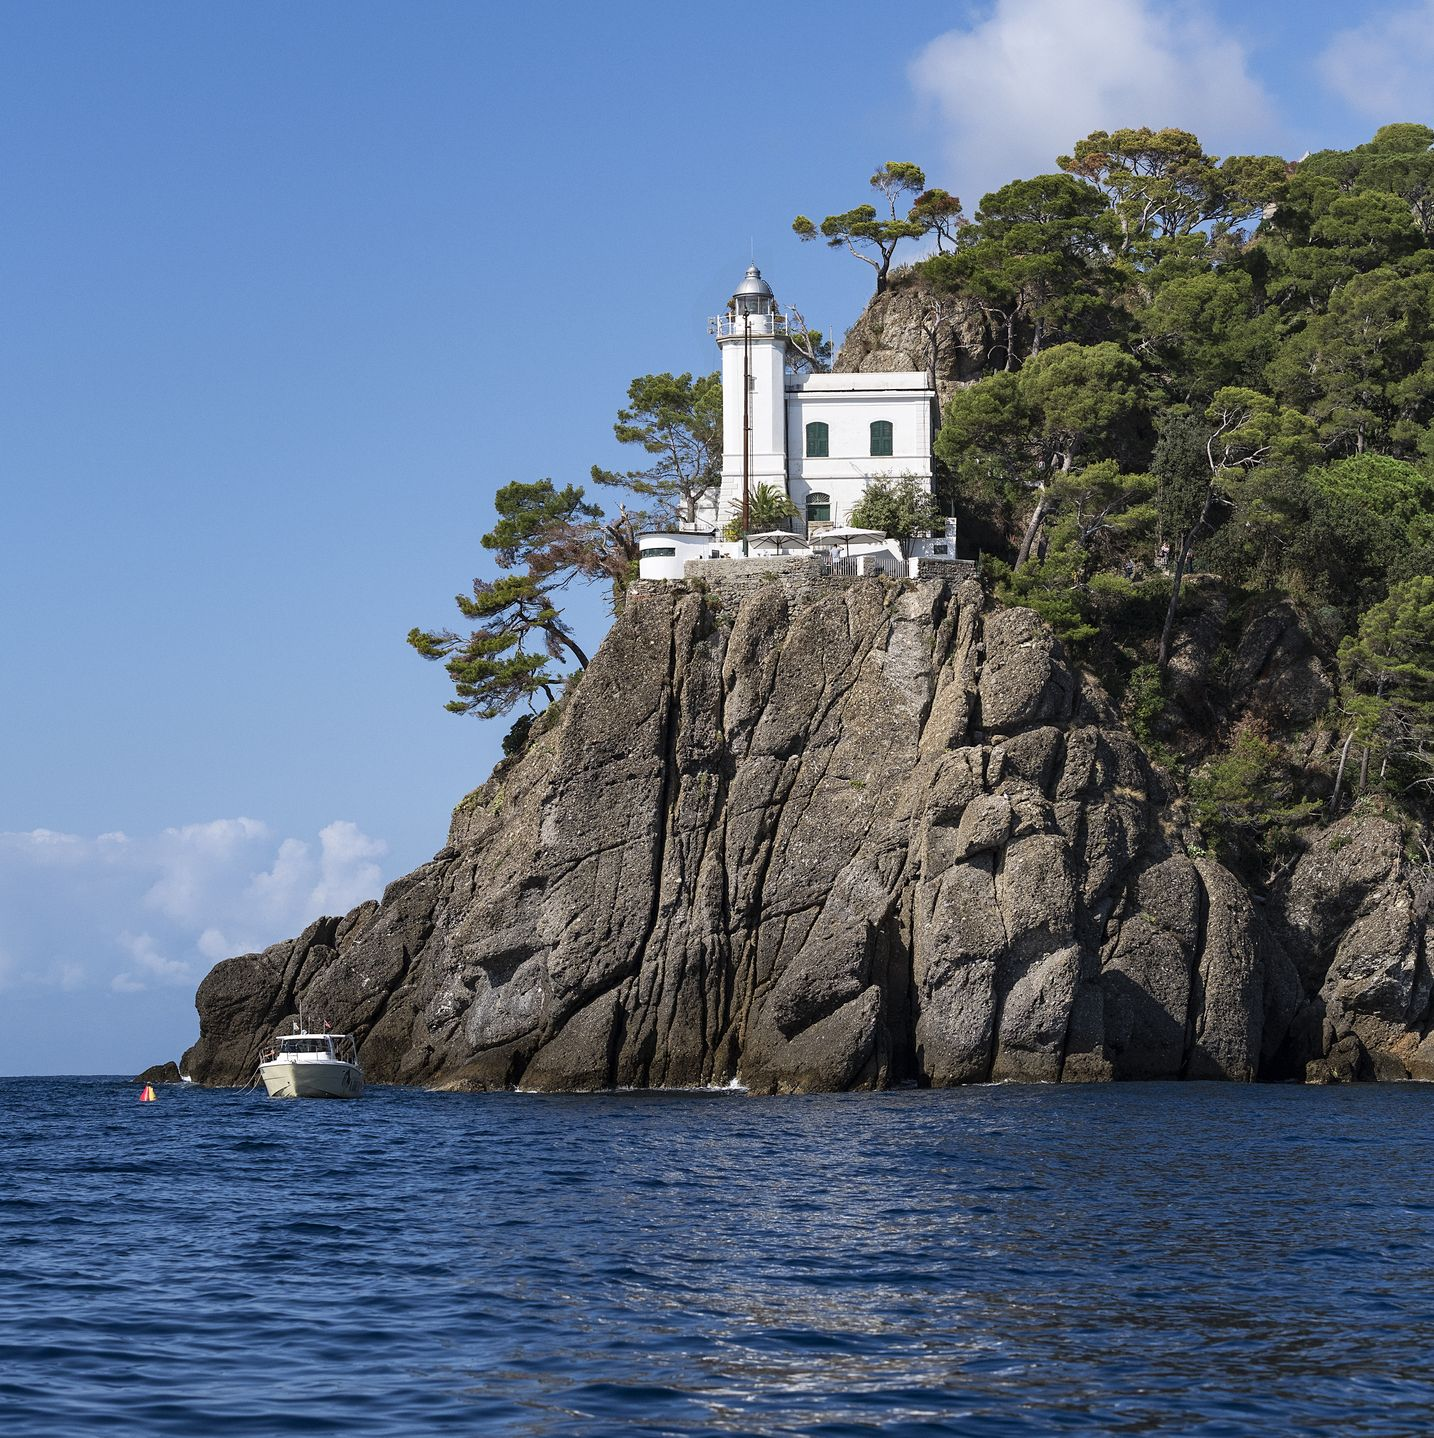 Lighthouse, Portofino, Liguria, Italy